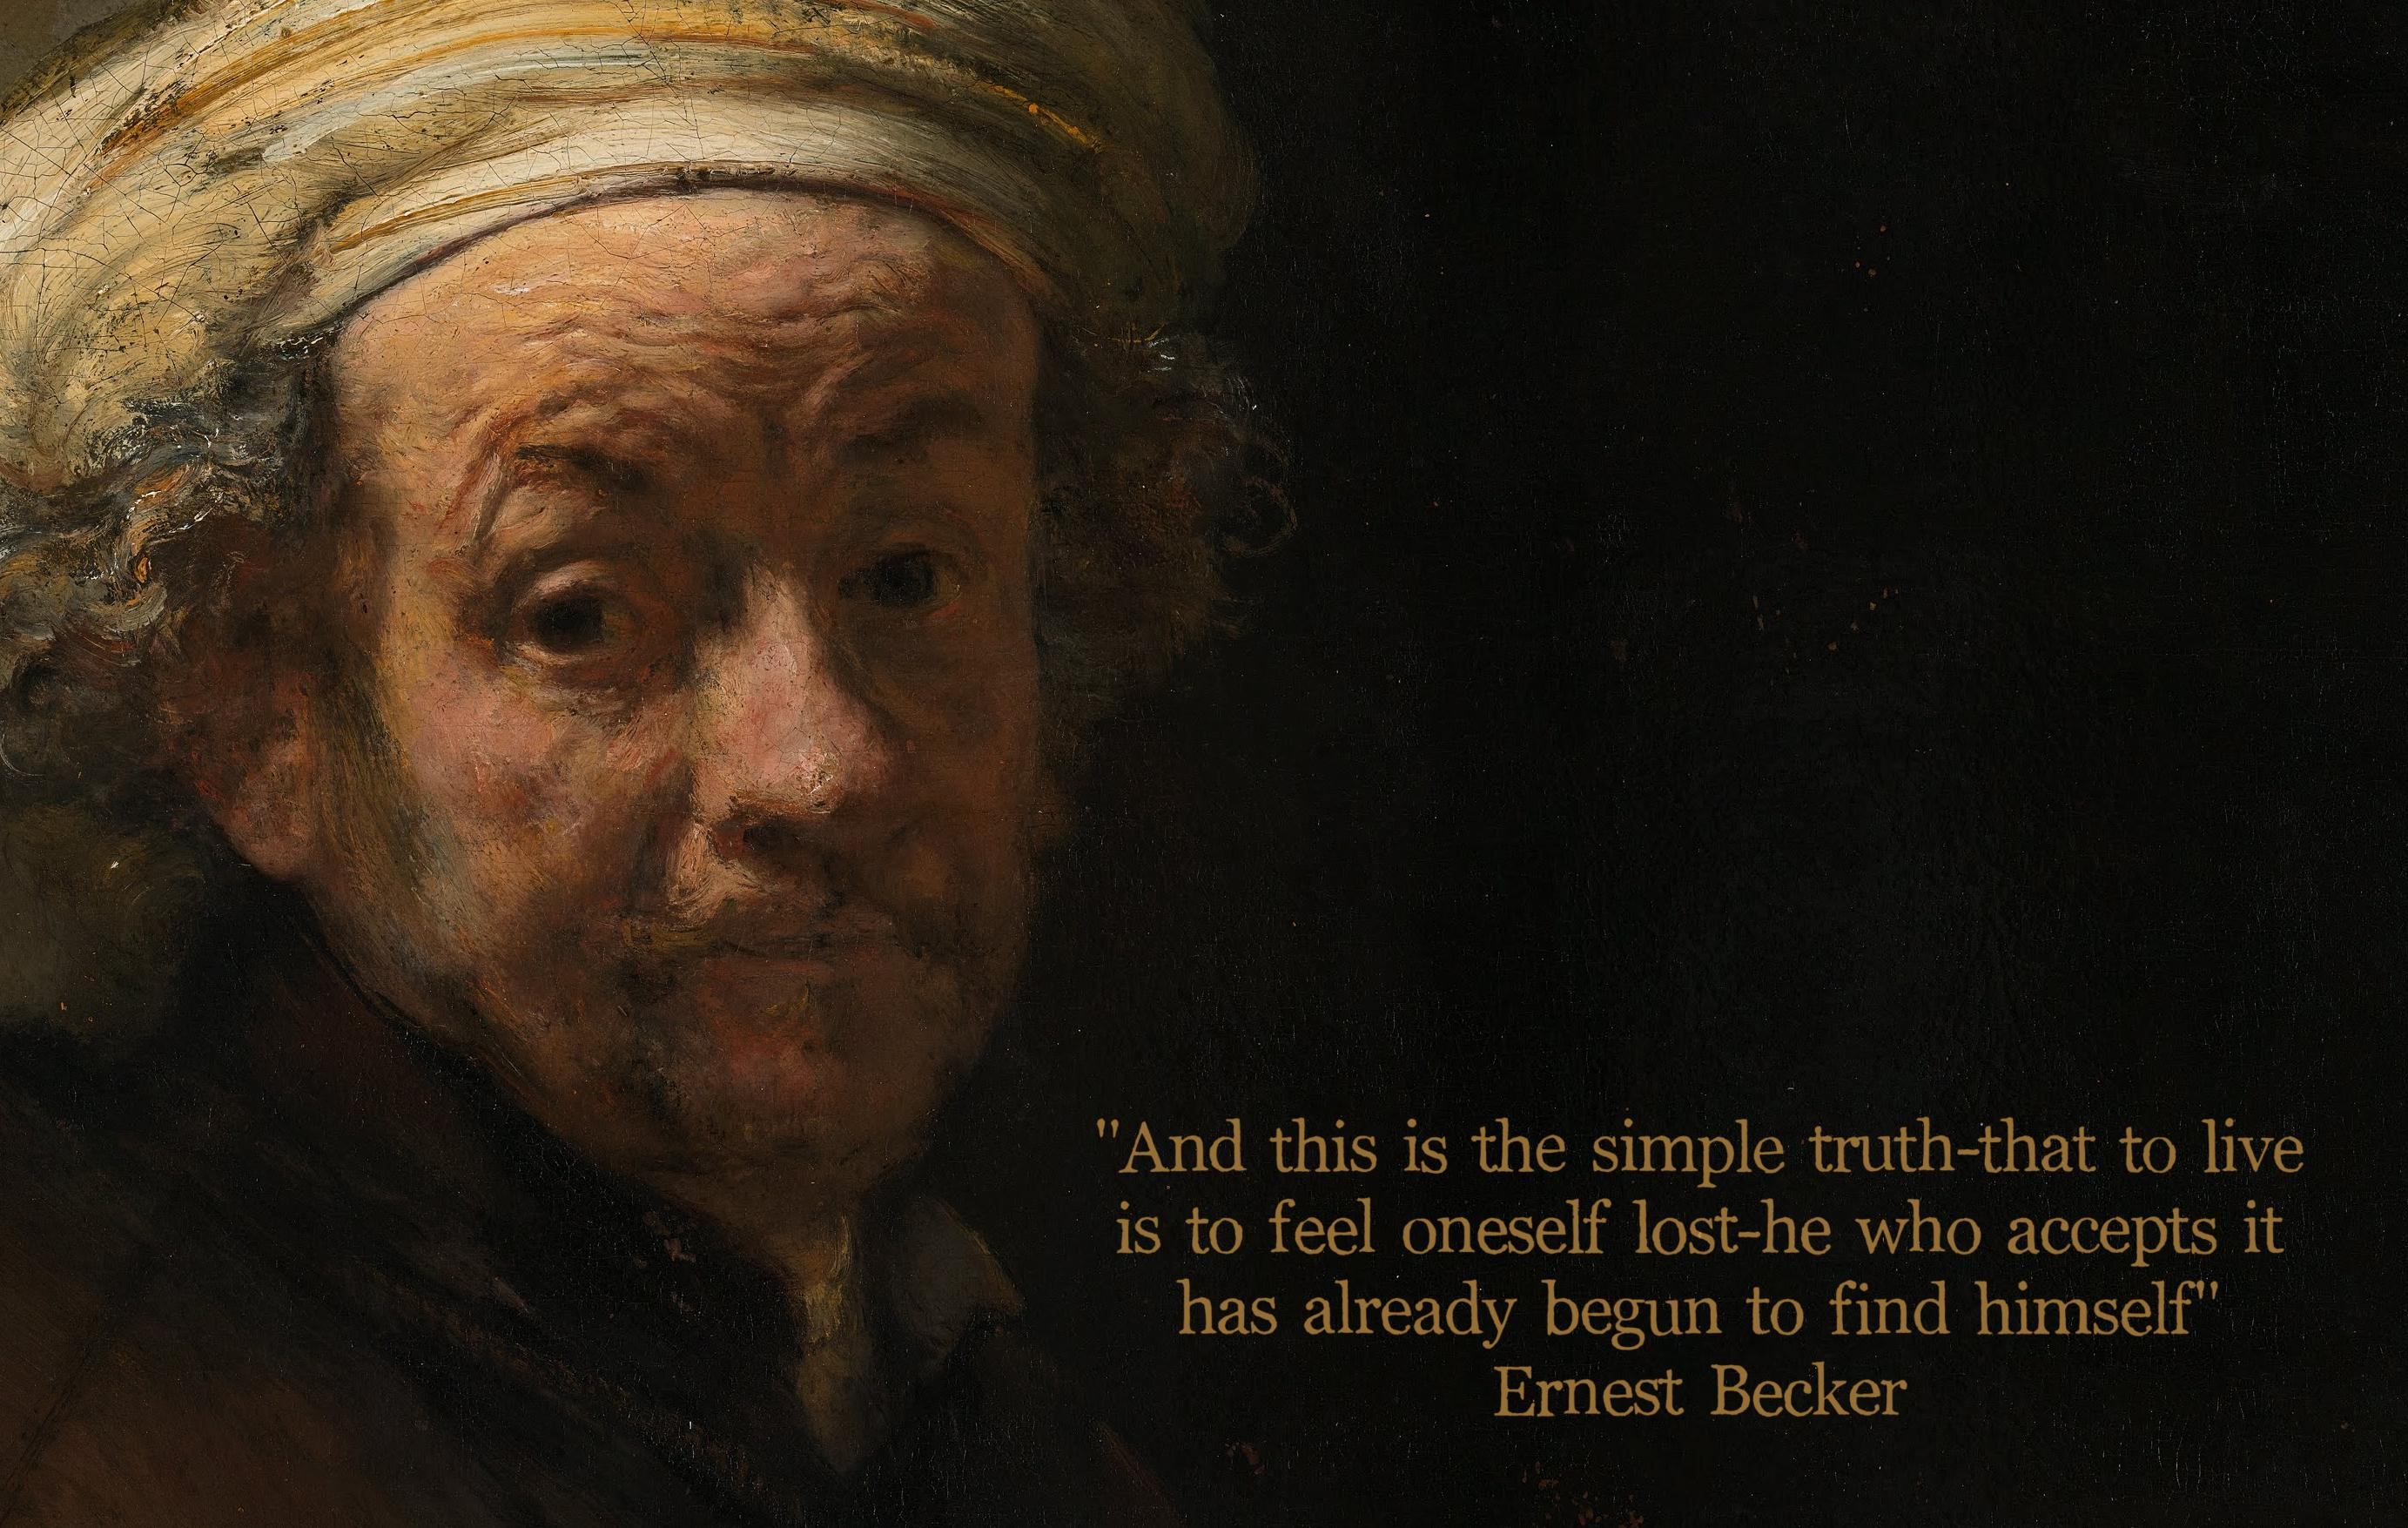 """And this is the simple truth-that to live is to feel oneself lost-he who accepts it has already begun to find himself"" – Ernest Becker [2766×1755]"